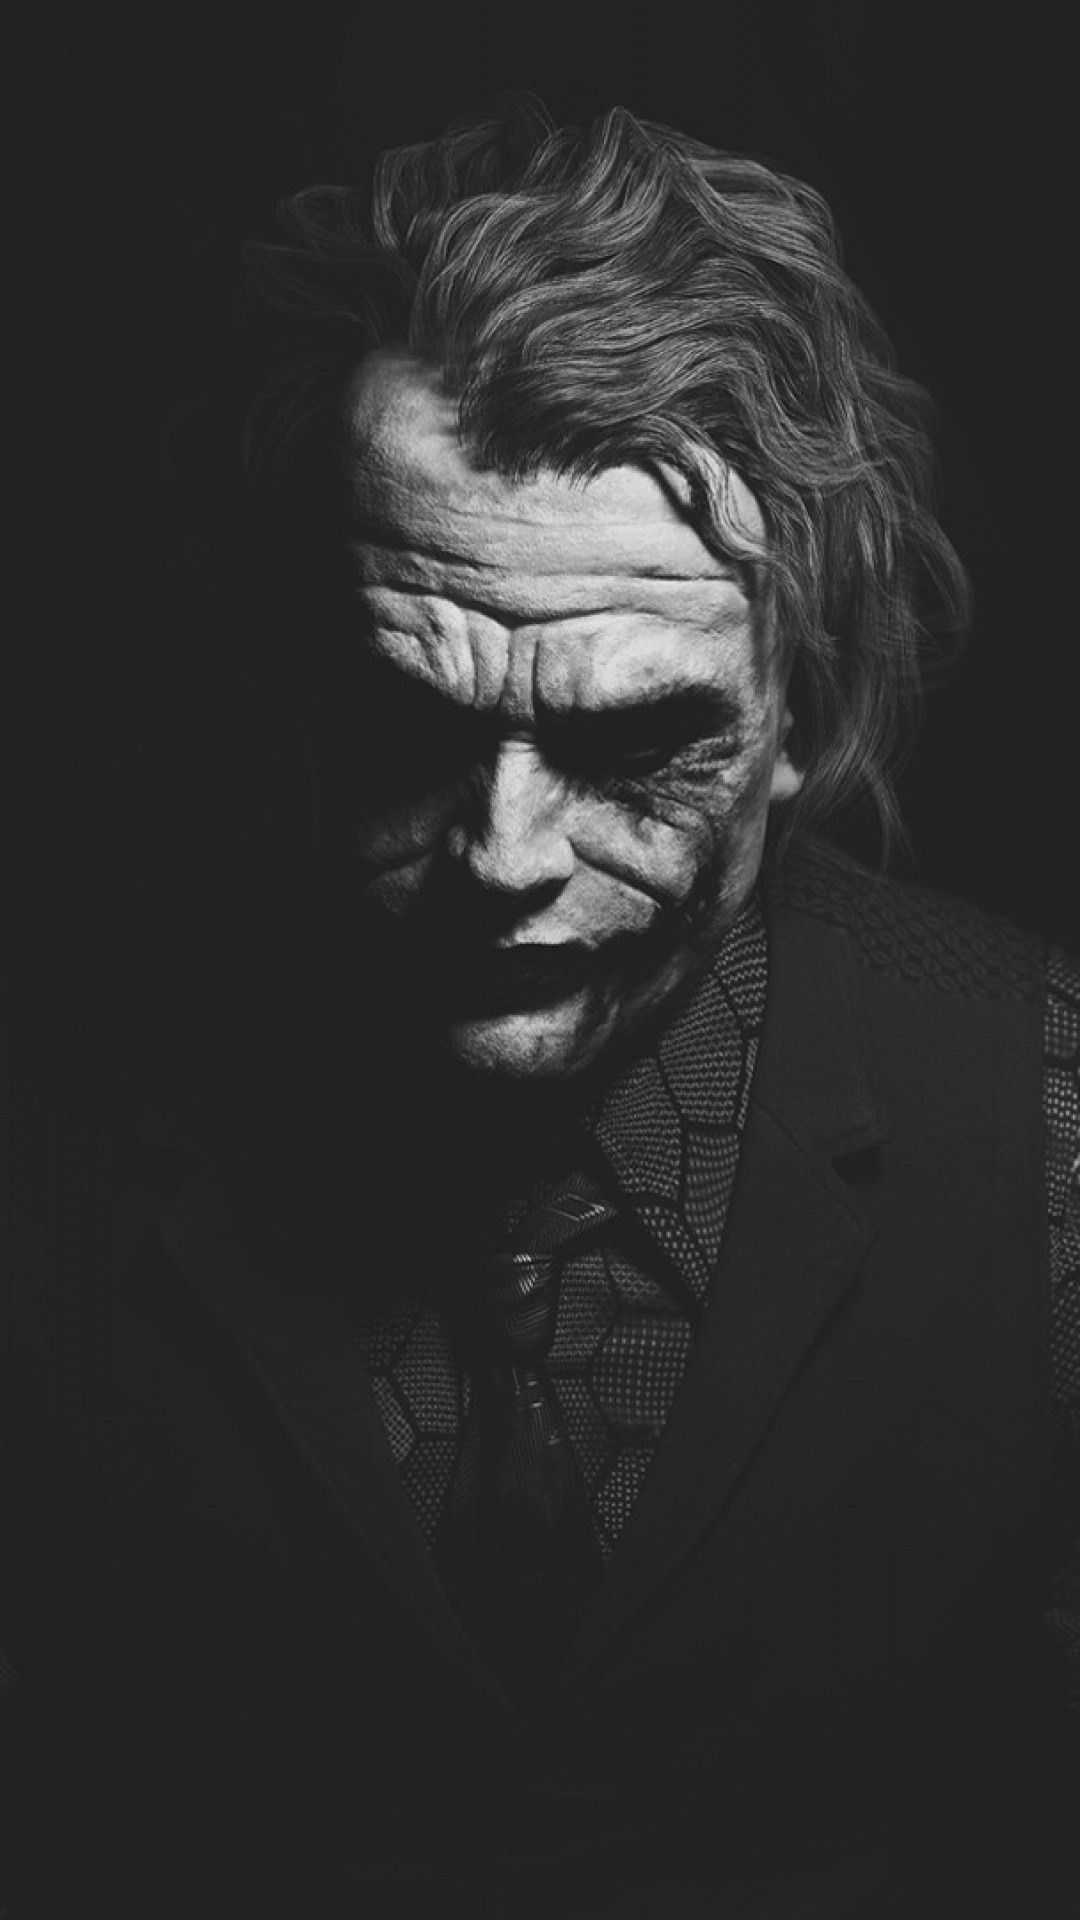 1080x1920 1080x1920 Heath Ledger Joker Monochrome Batman